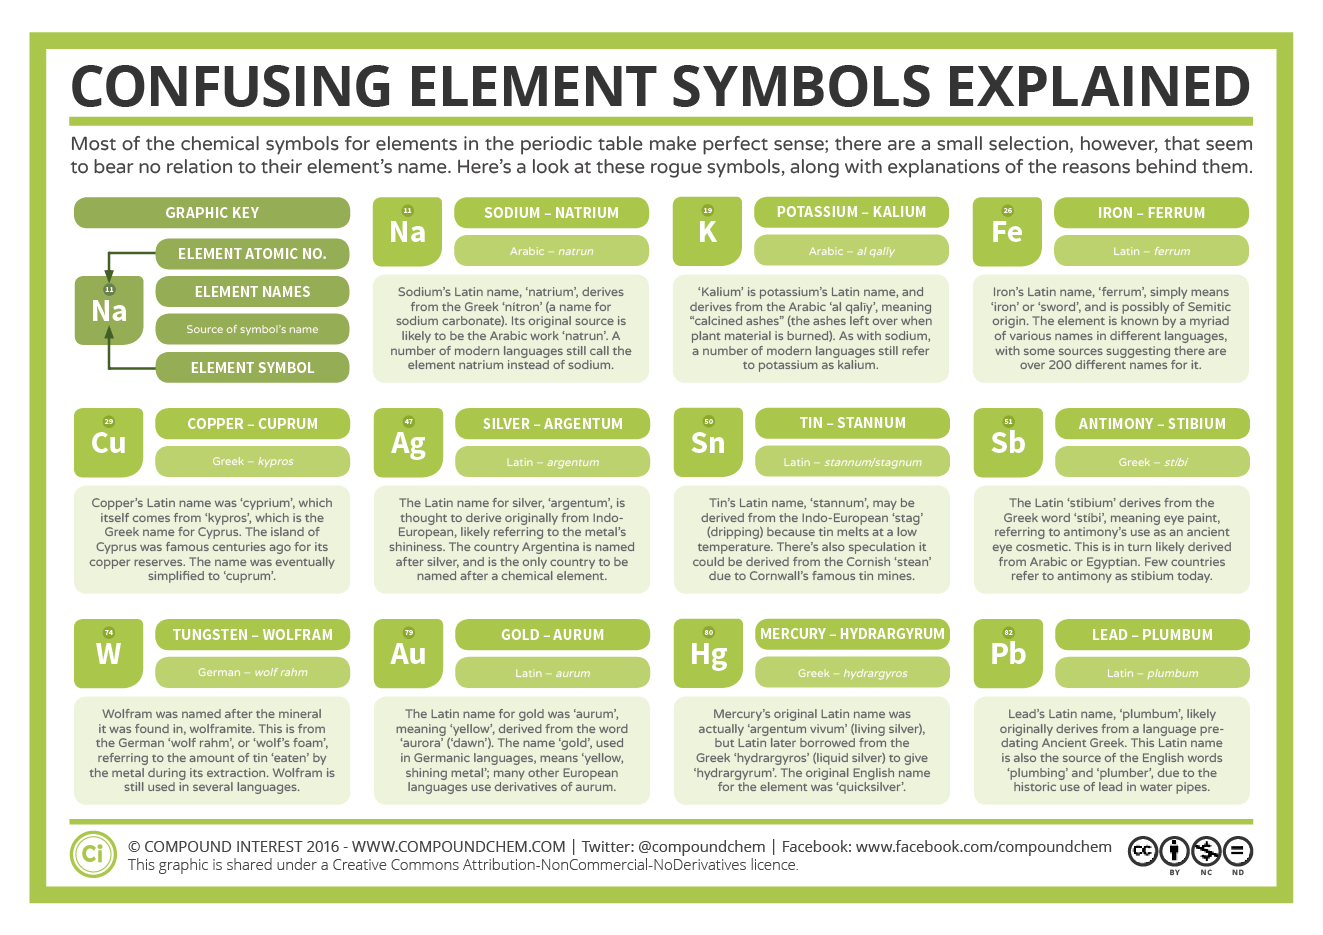 Element oddities 11 confusing chemical symbols explained compound 11 confusing chemical element symbols explained urtaz Image collections